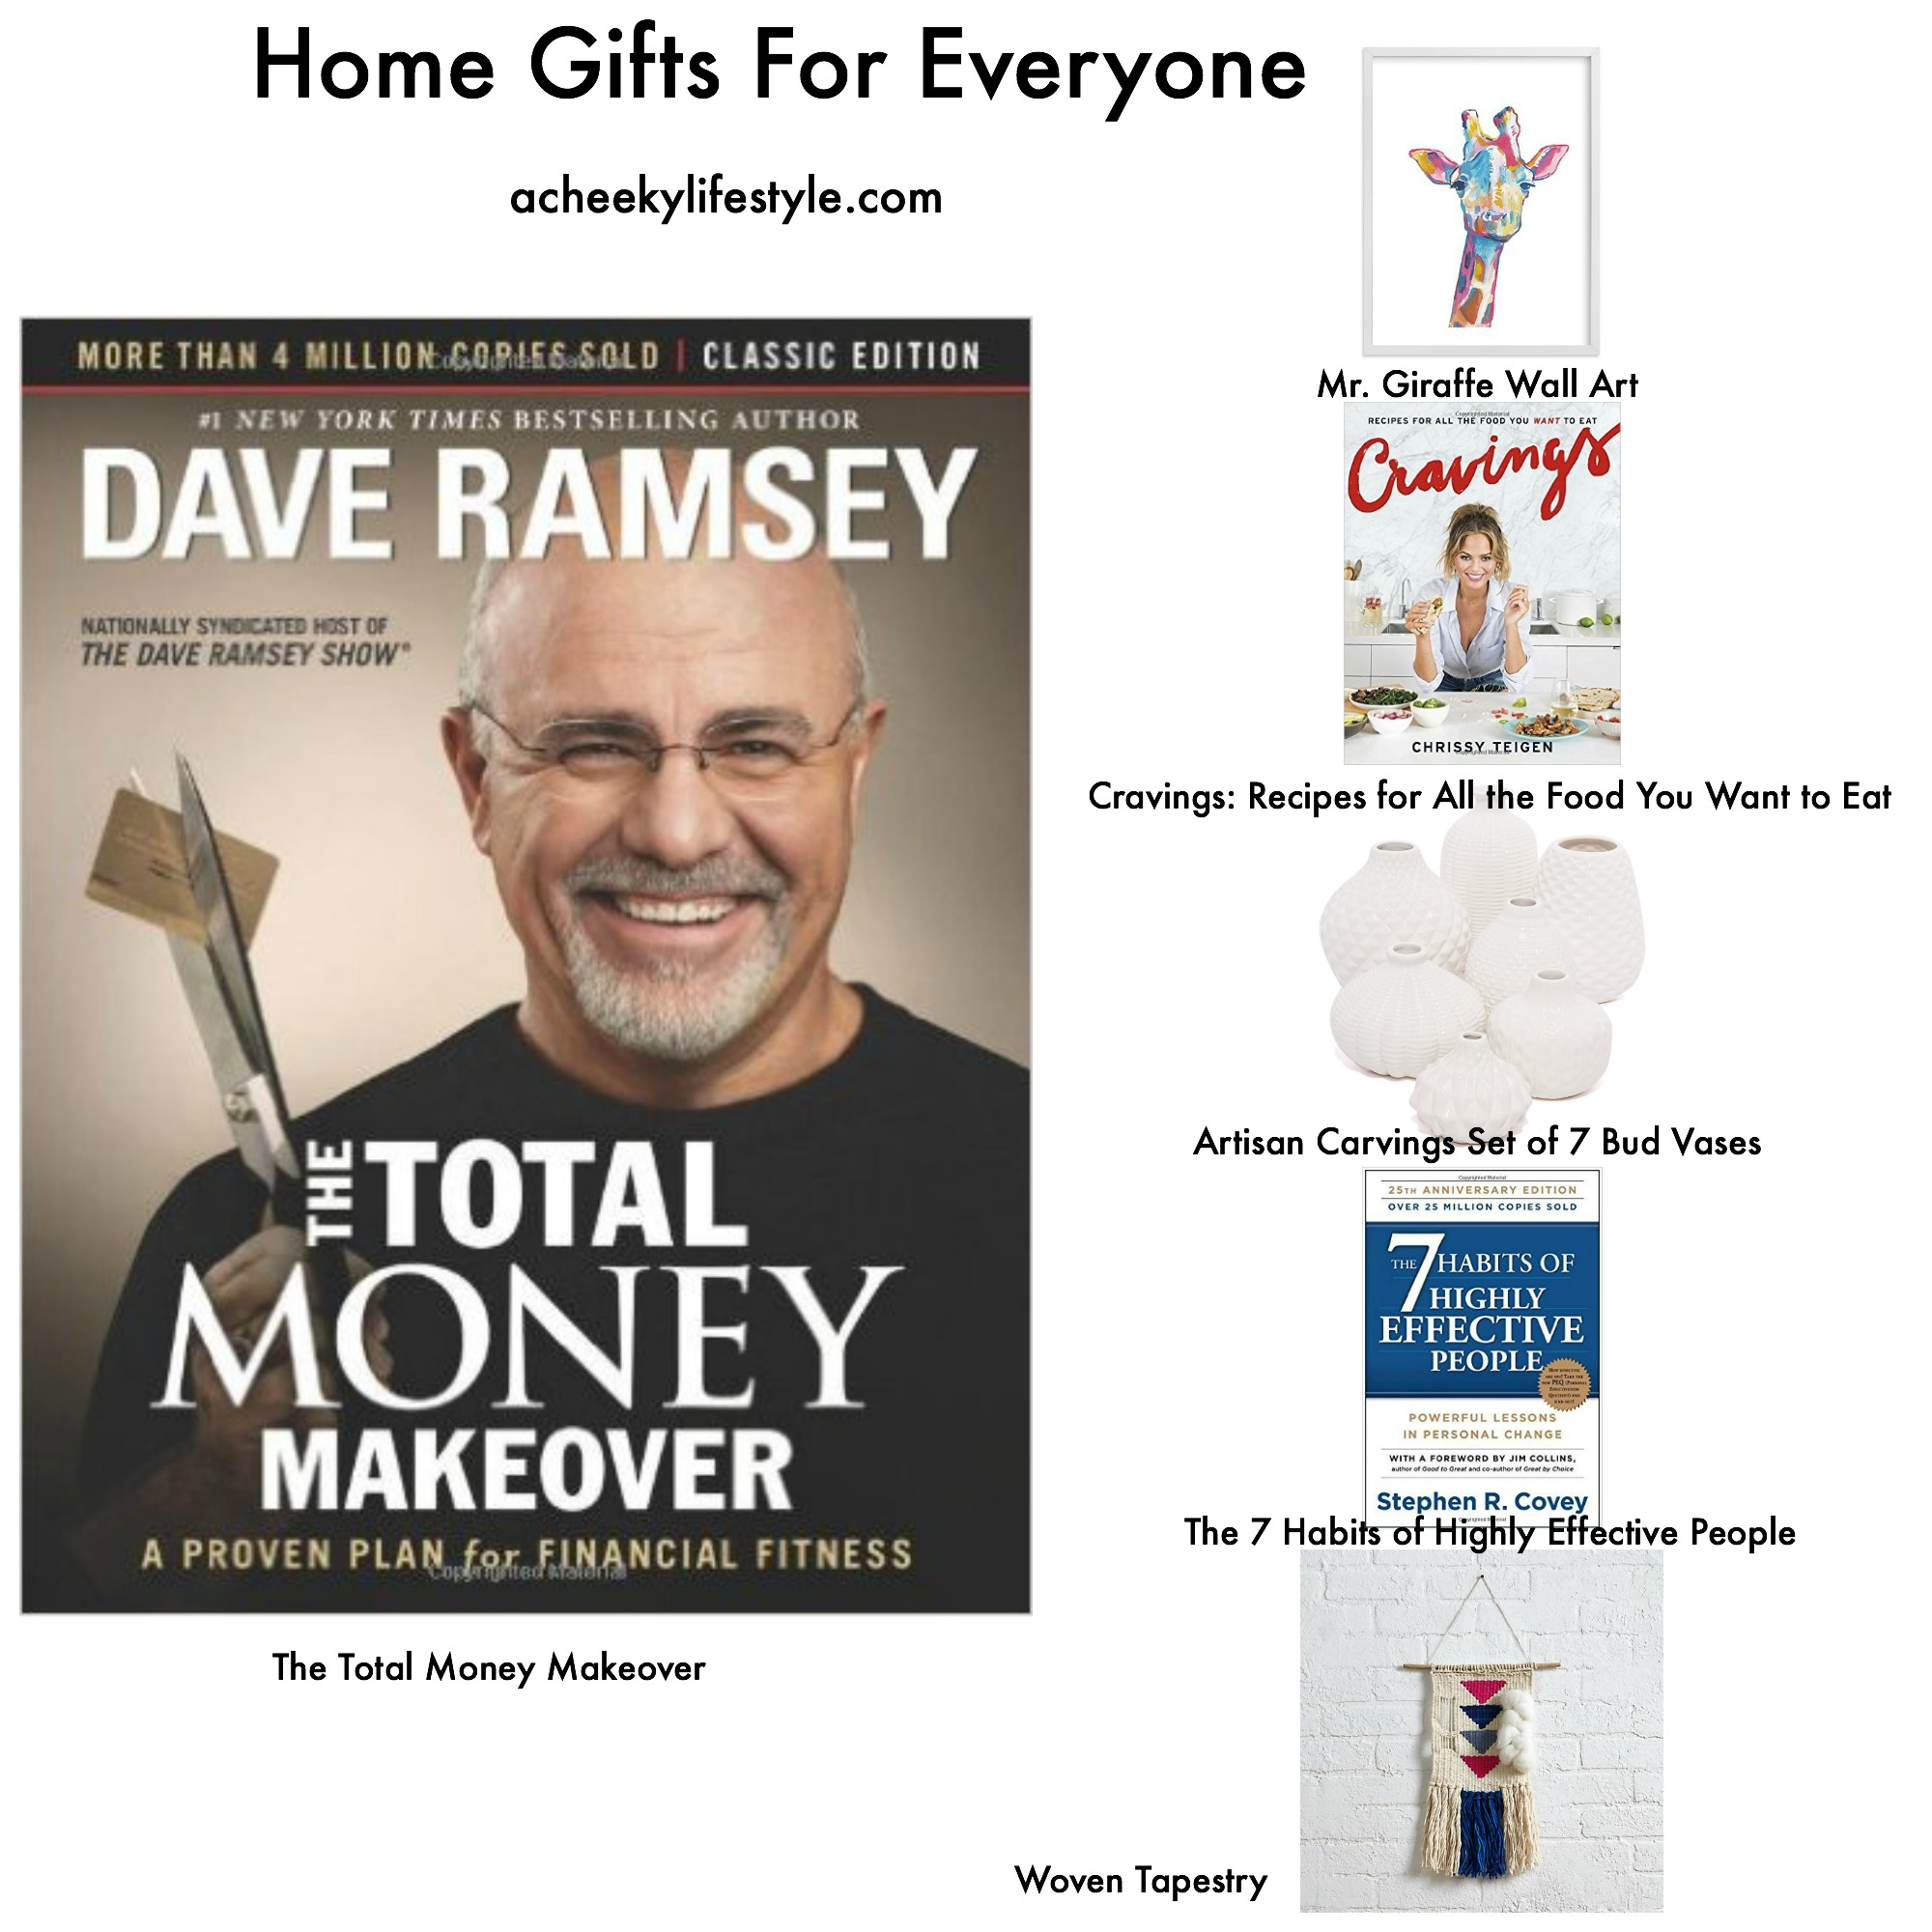 Home Gifts For Everyone @ acheekylifestyle.com by Val Banderman.jpg